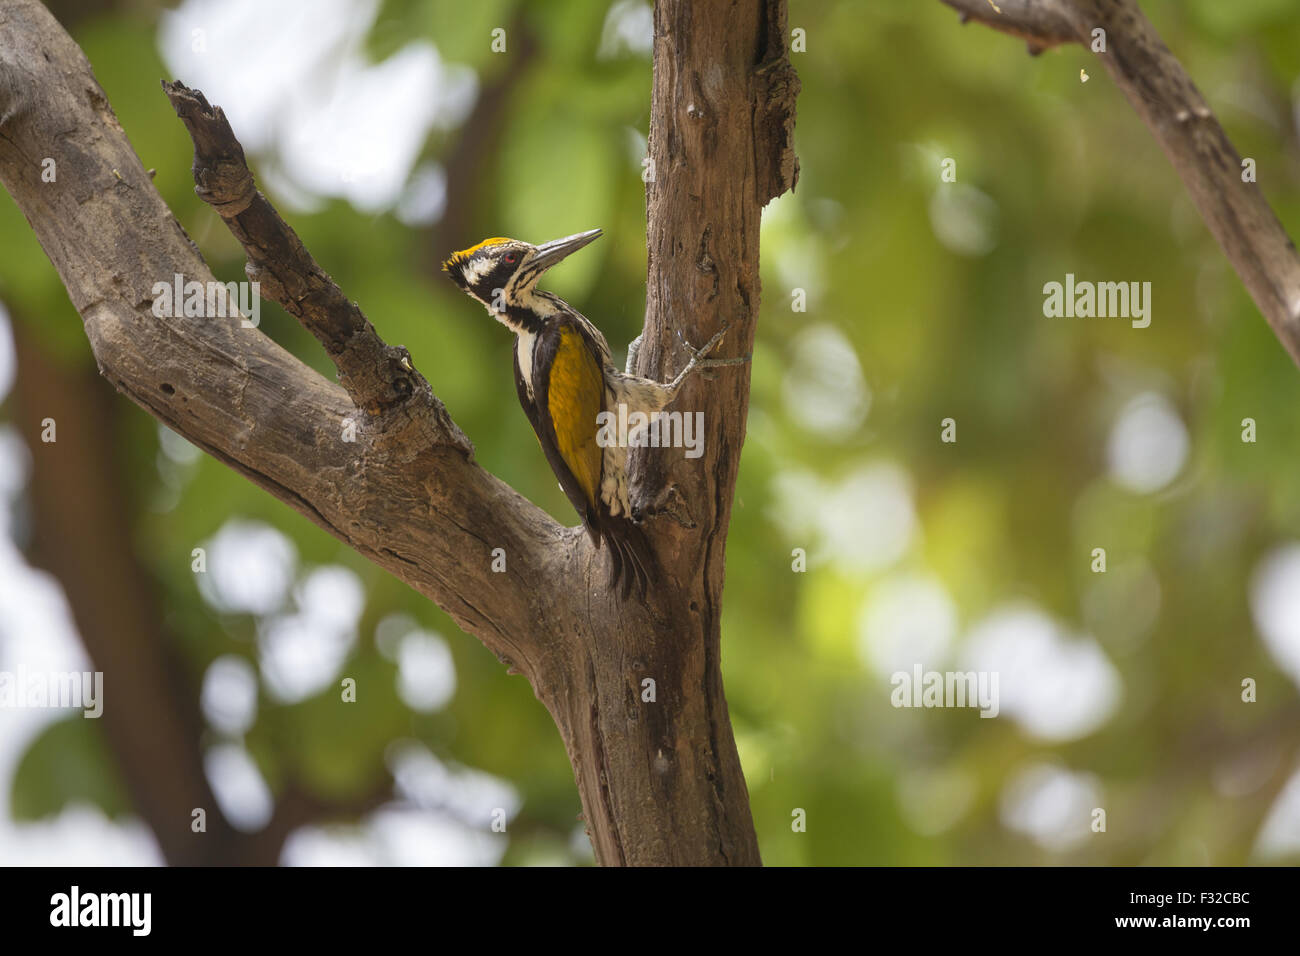 White-naped Woodpecker (Chrysocolaptes festivus) adult female, clinging to branch, Kanha N.P., Madhya Pradesh, India, - Stock Image